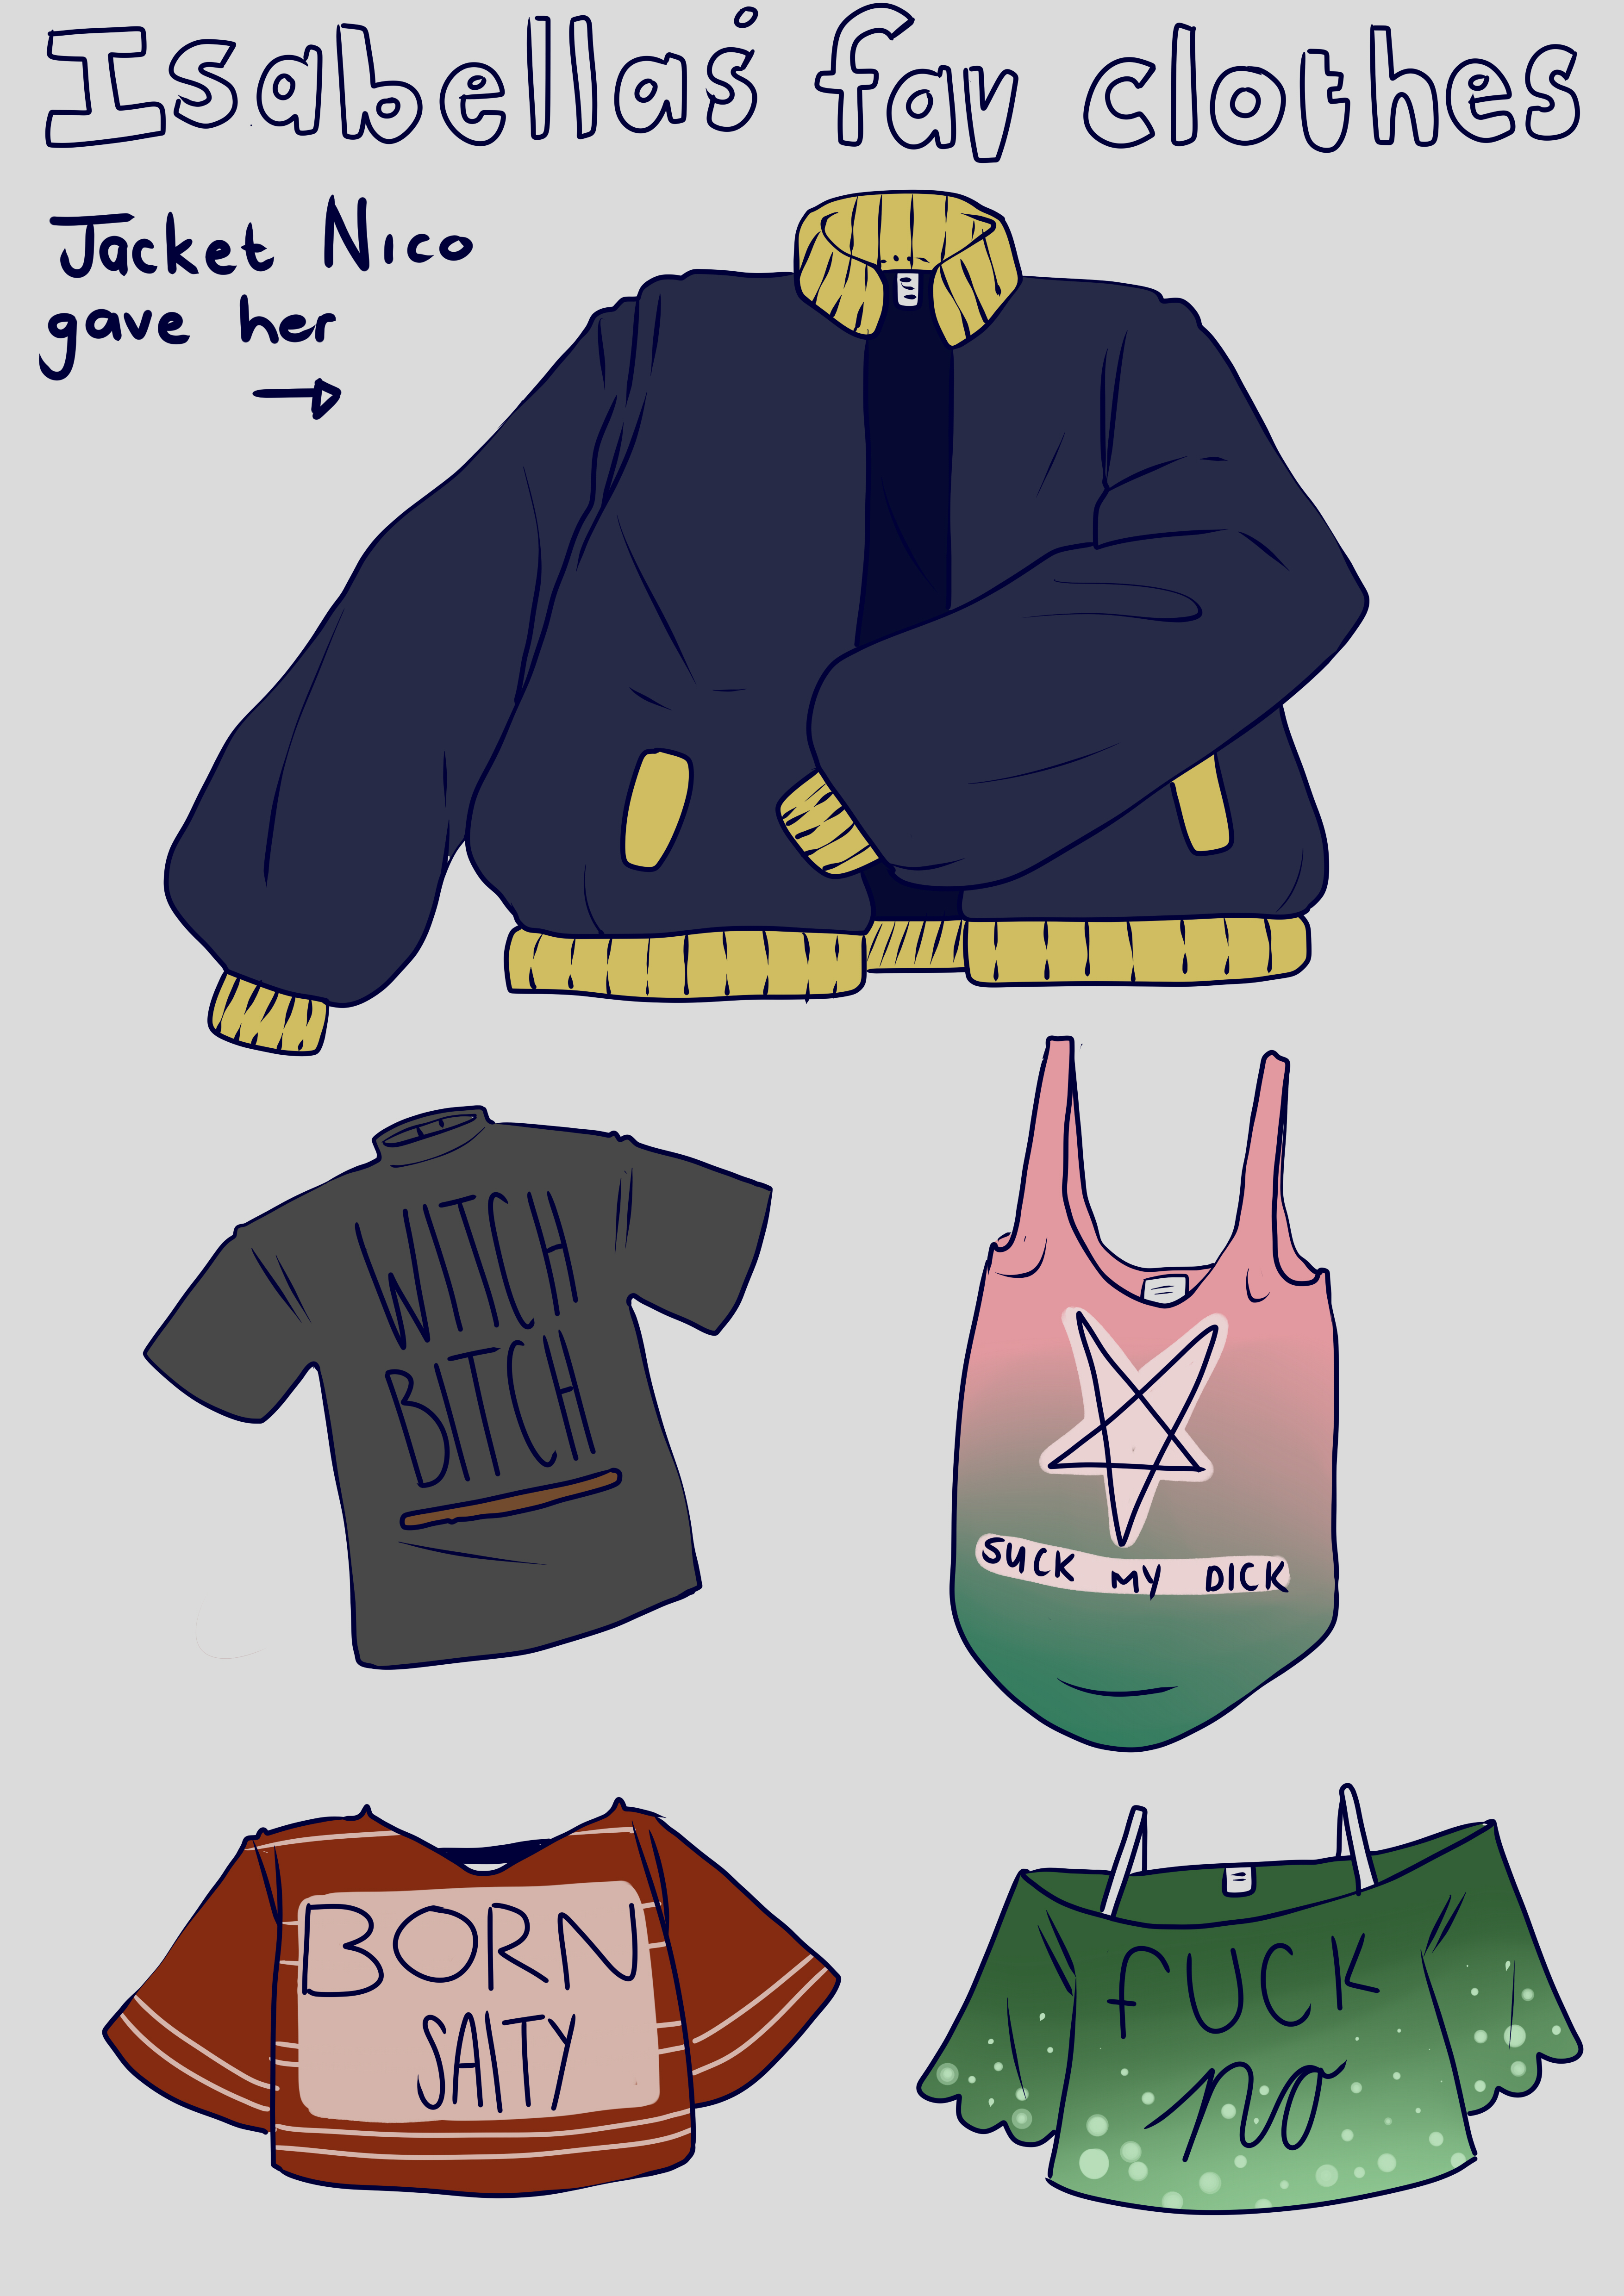 Isabella's fav clothes